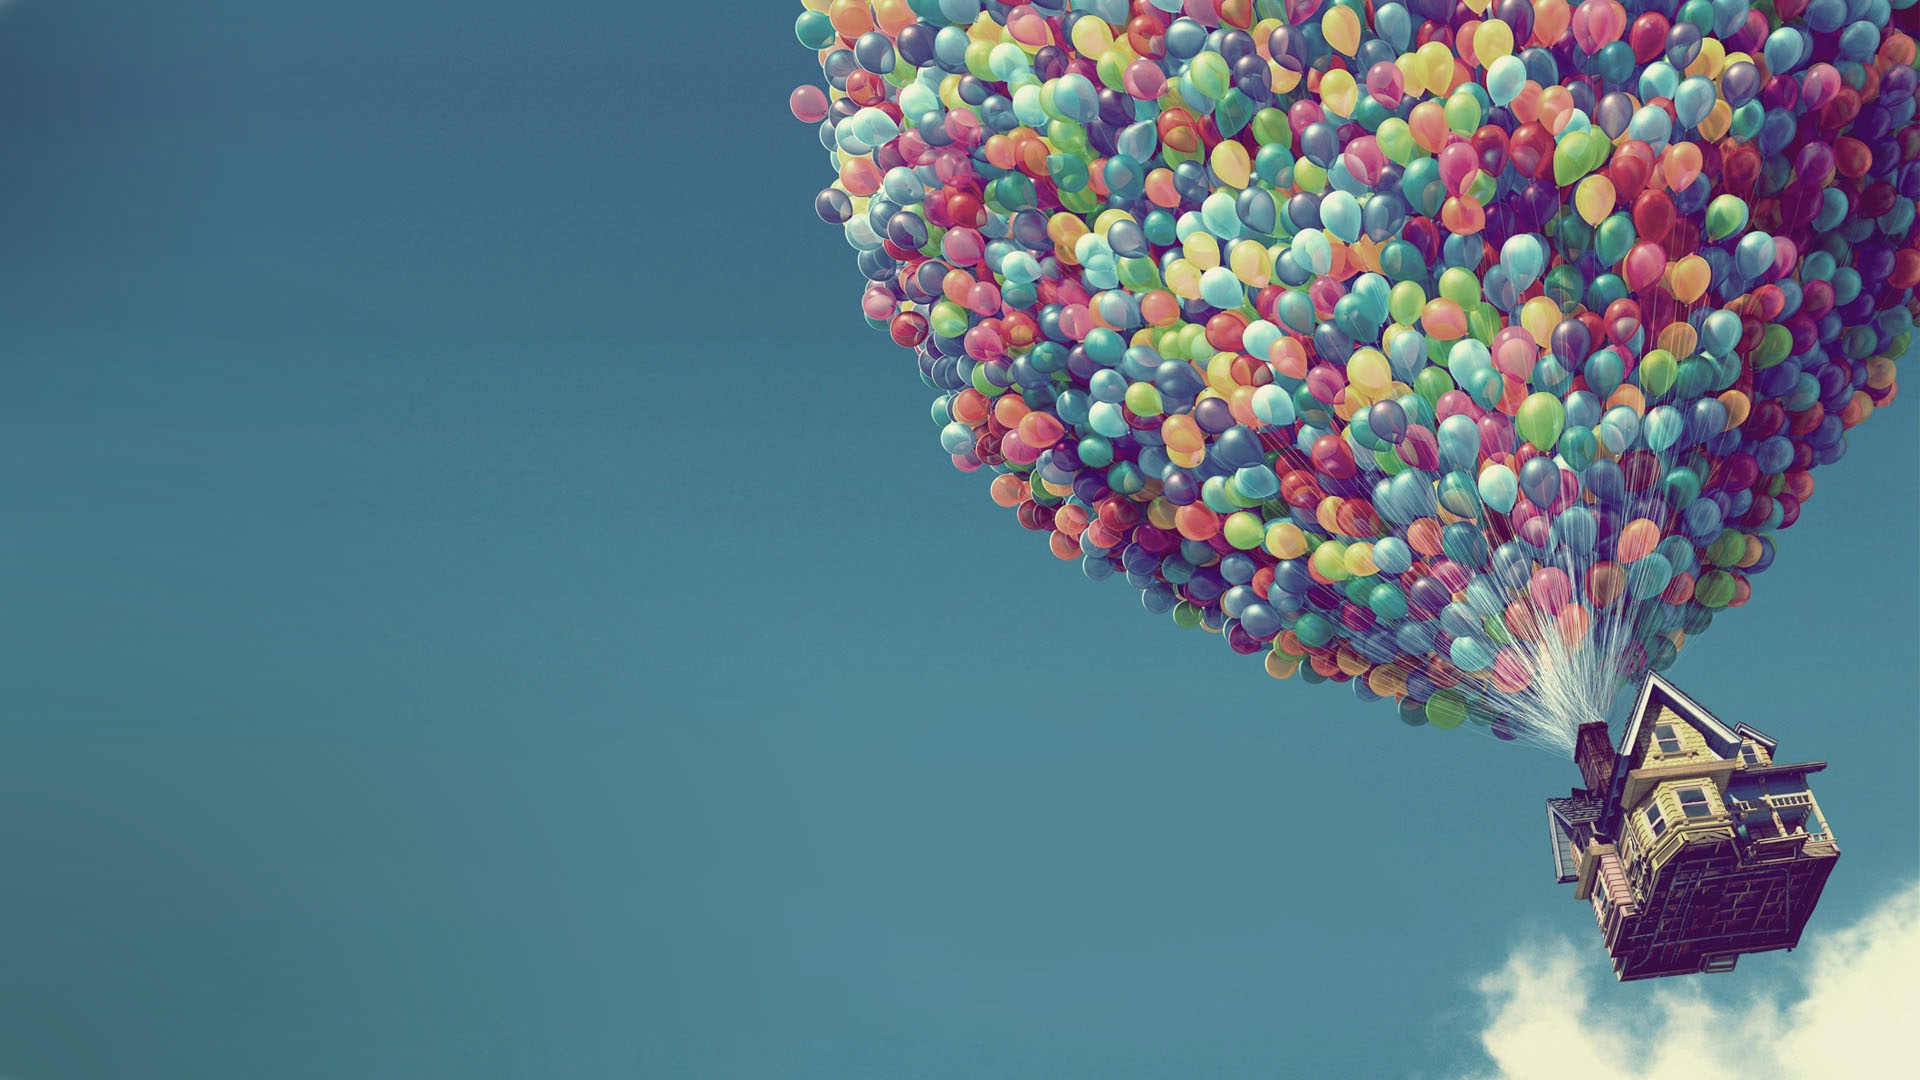 wallpaper house sky balloons pixar disney cartoon movie 1920x1080